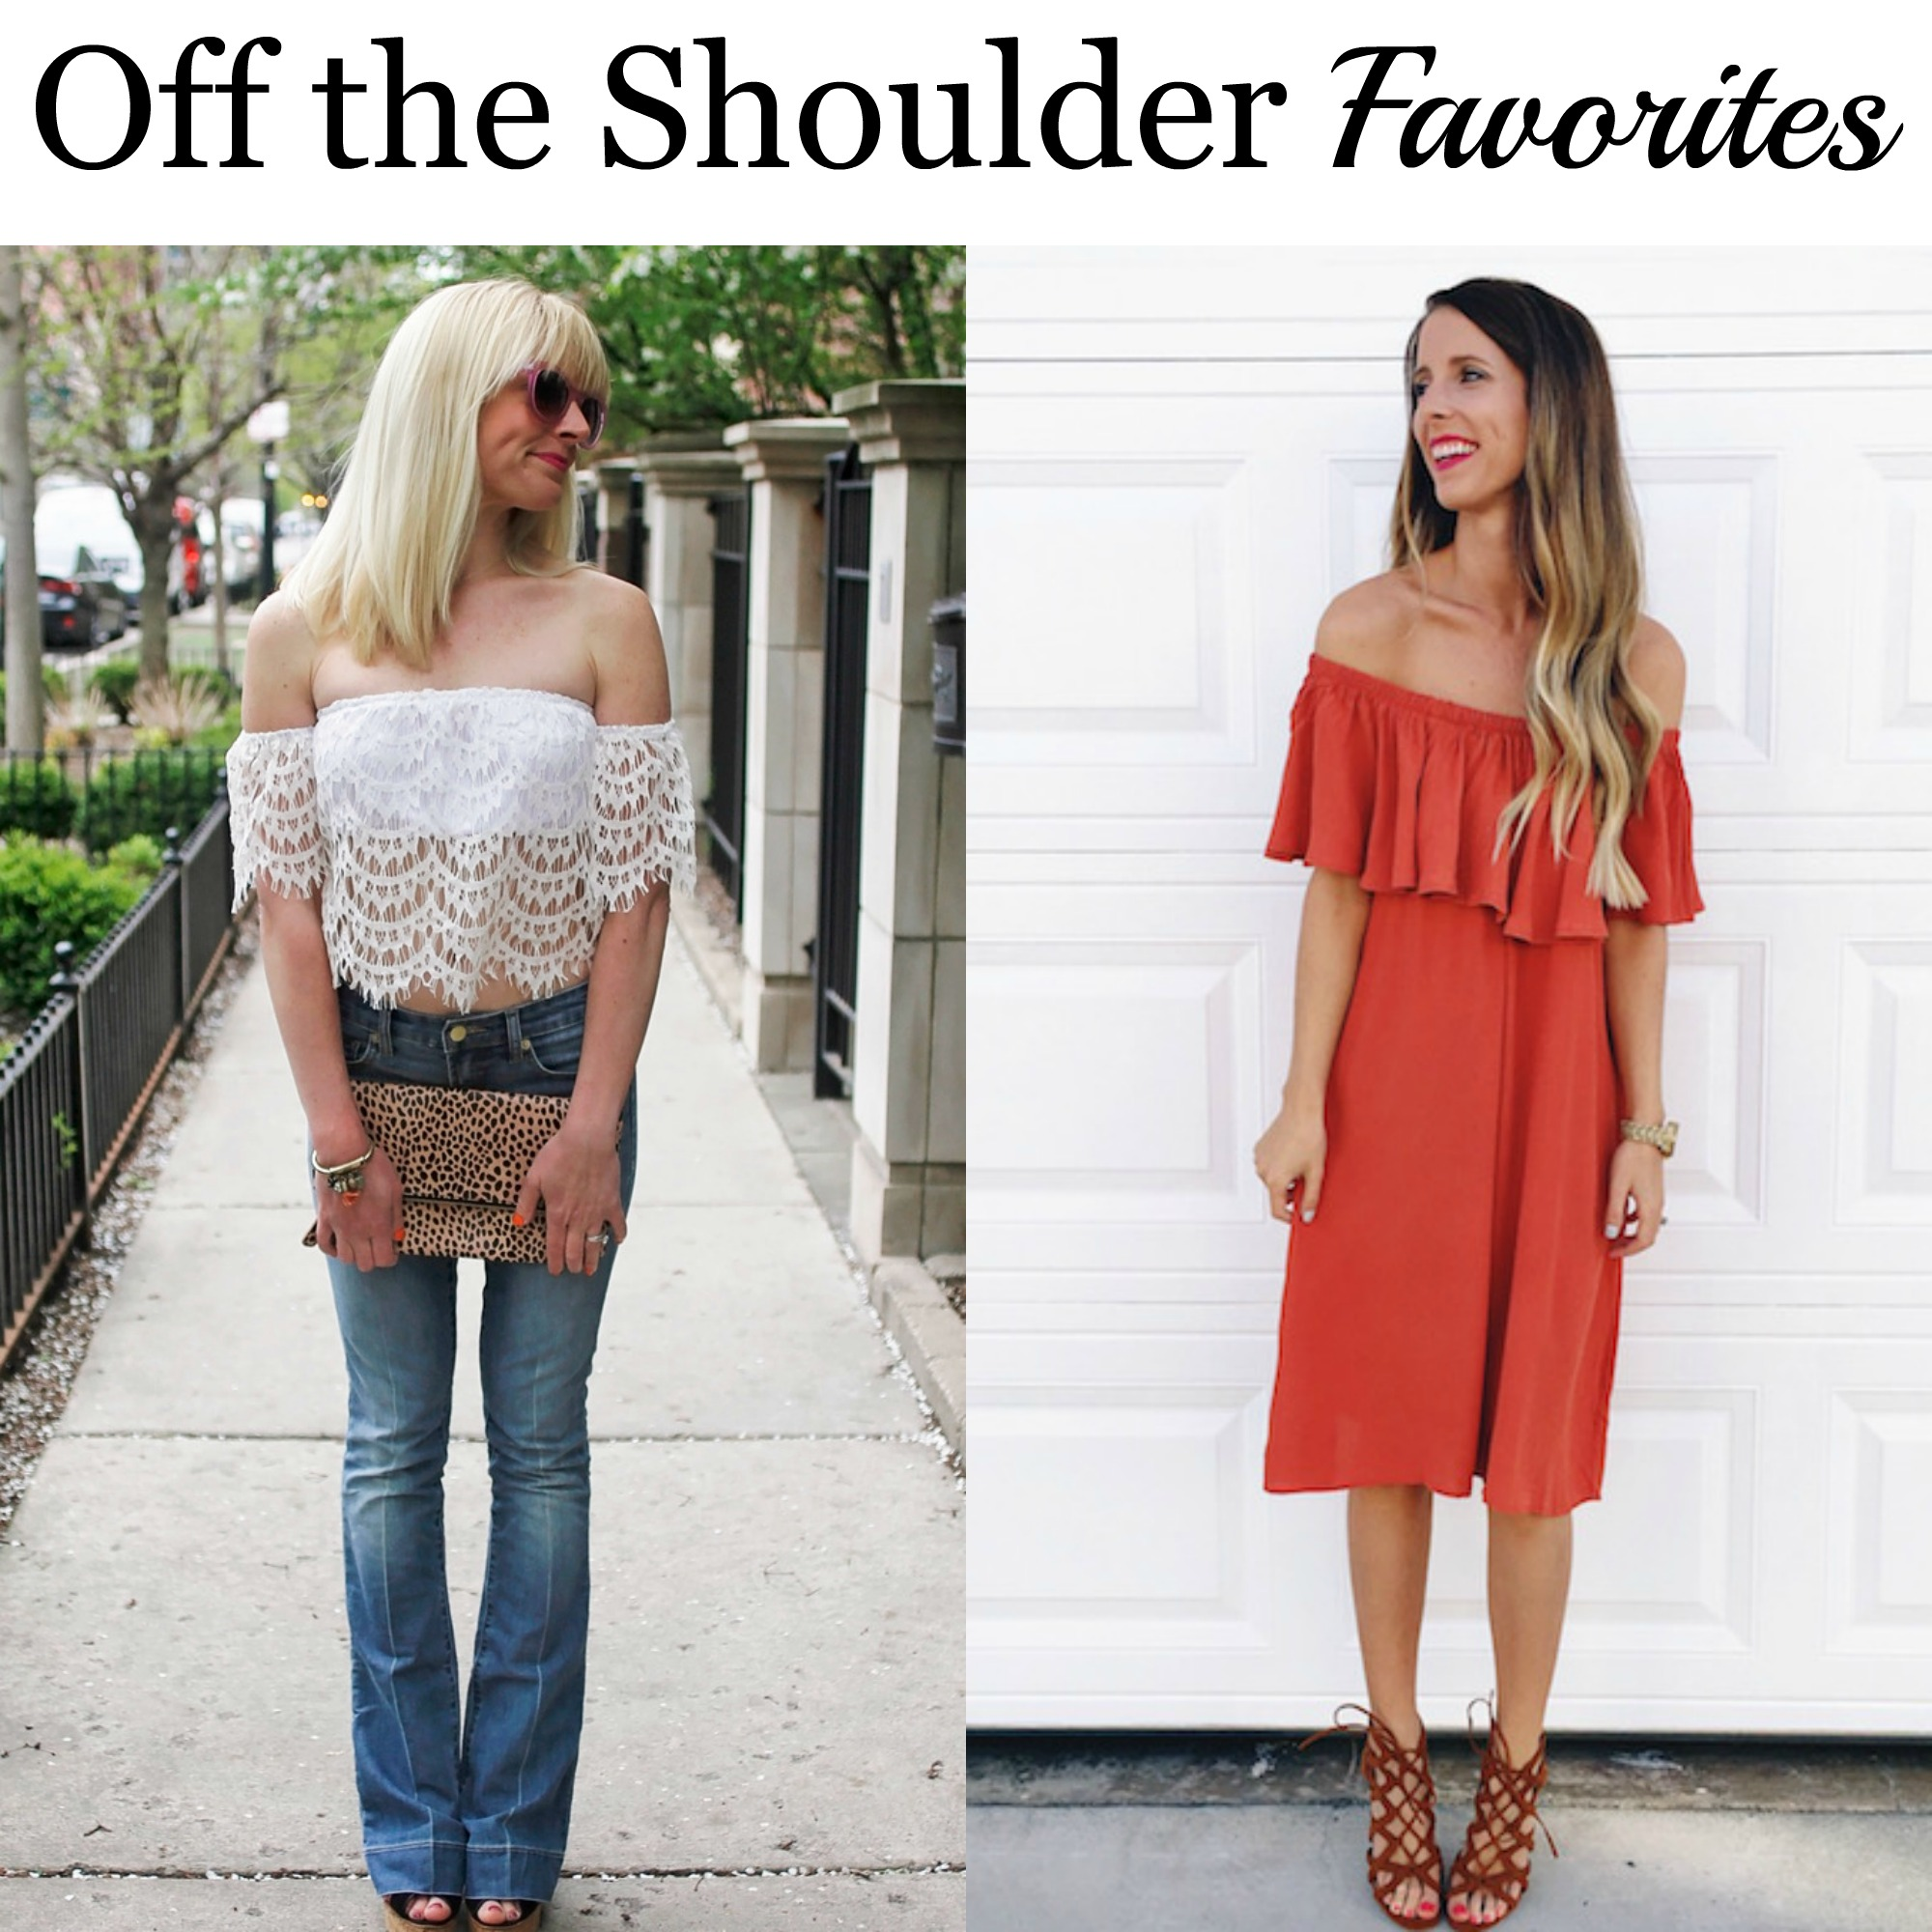 The favorites for the week are Johanna from 101 Things I Love http://www.101thingsilove.com/blog/delicate522016 and Erin of Happily Howards http://happilyhowards.com/2016/04/off-the-shoulder-trend.html